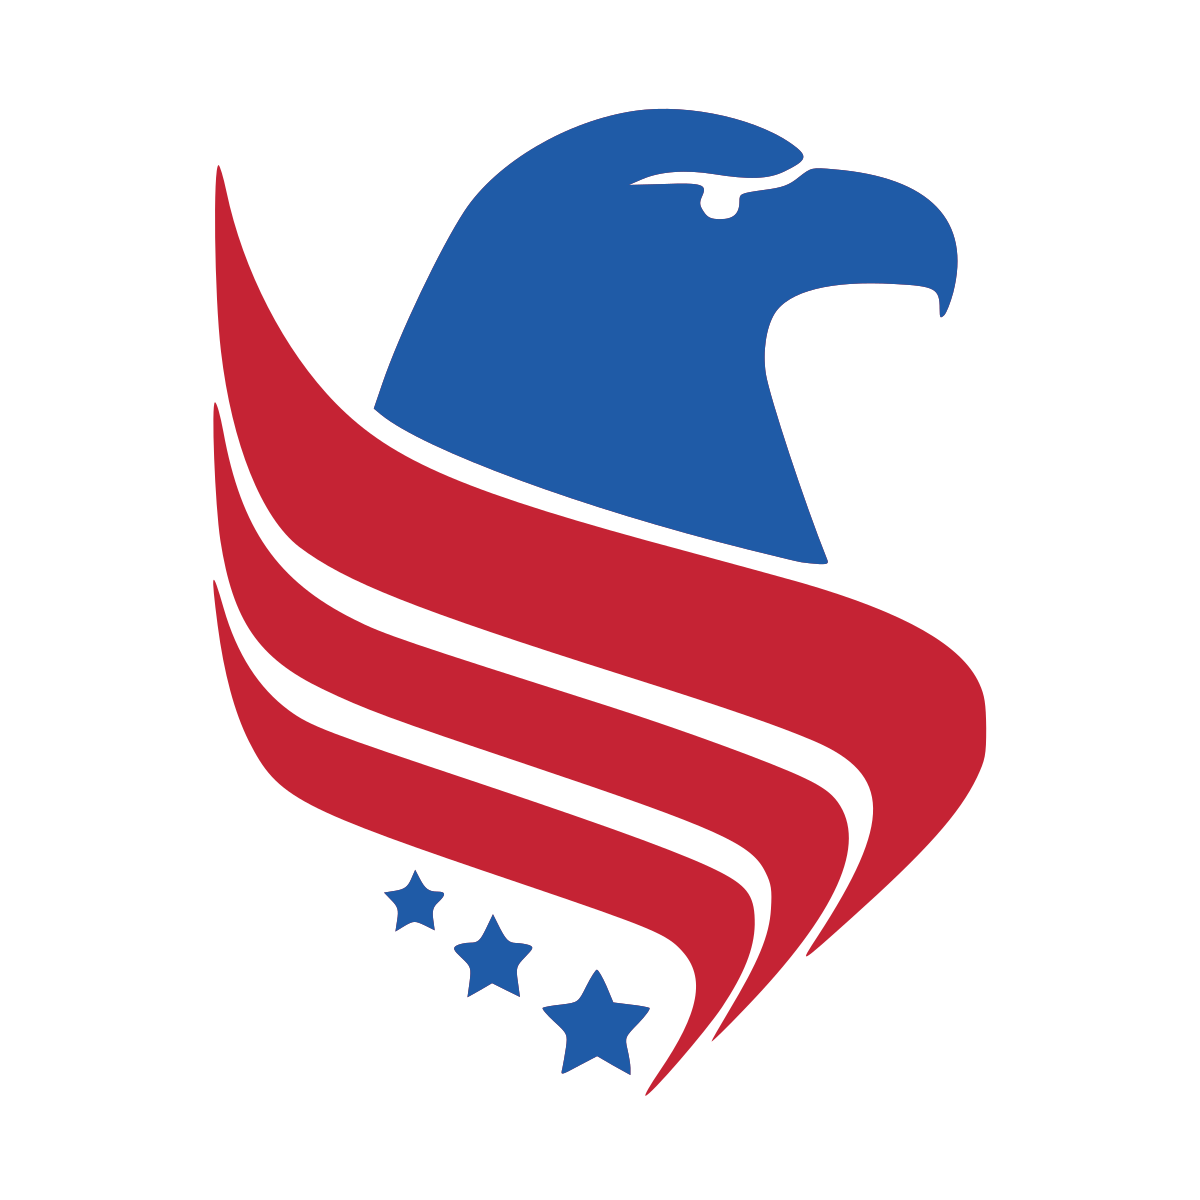 Constitution vector us. Party united states wikipedia